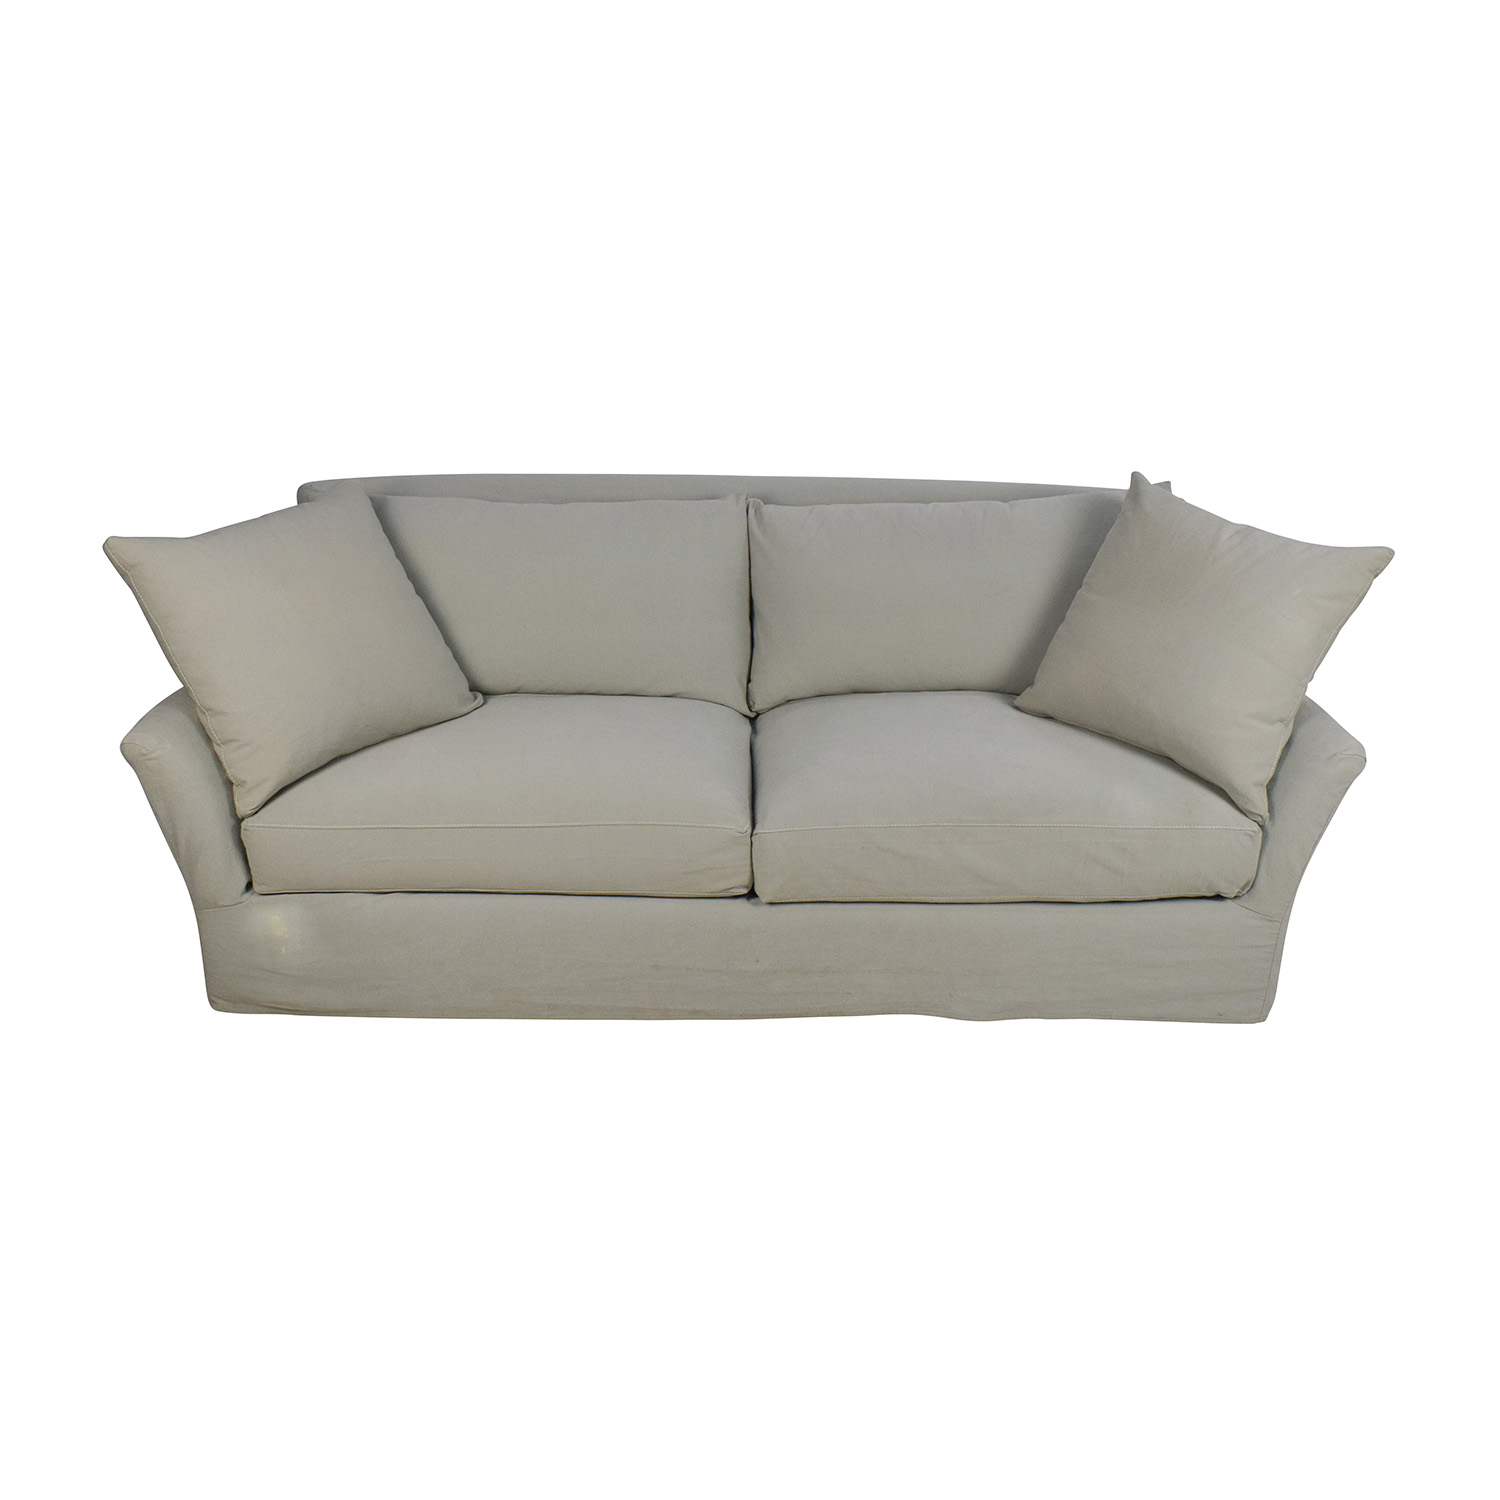 decorating with sage green sofa ashley furniture leather quality reviews 35 various decor ideas of